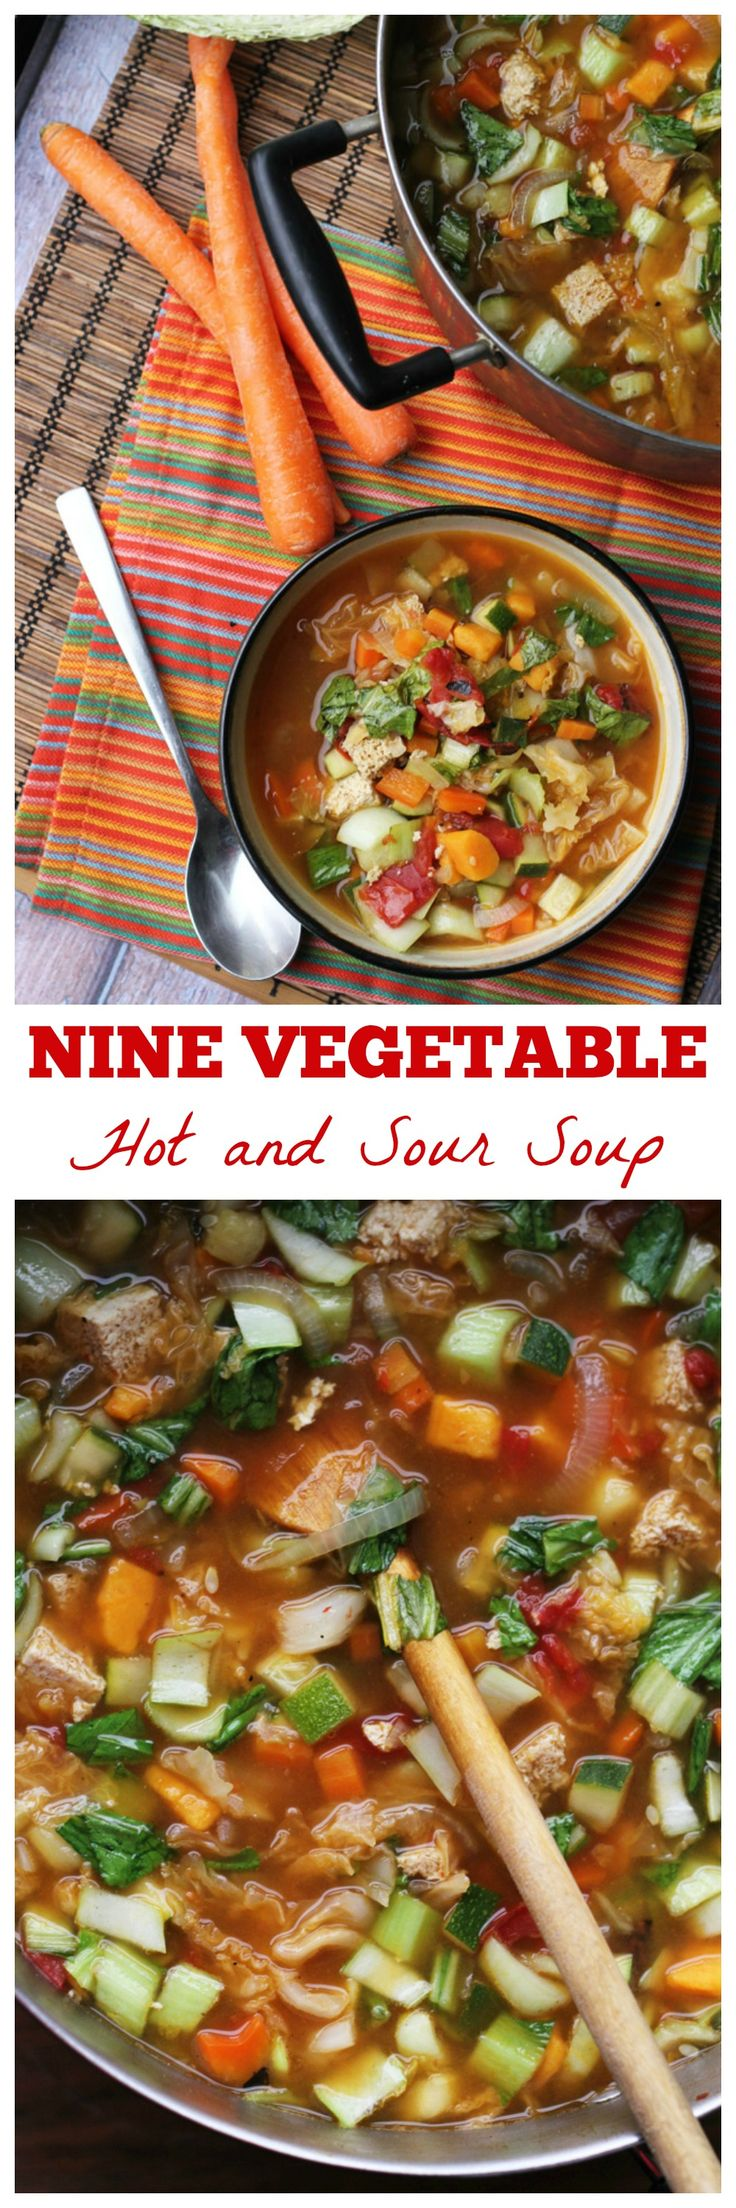 nine vegetable hot and sour soup